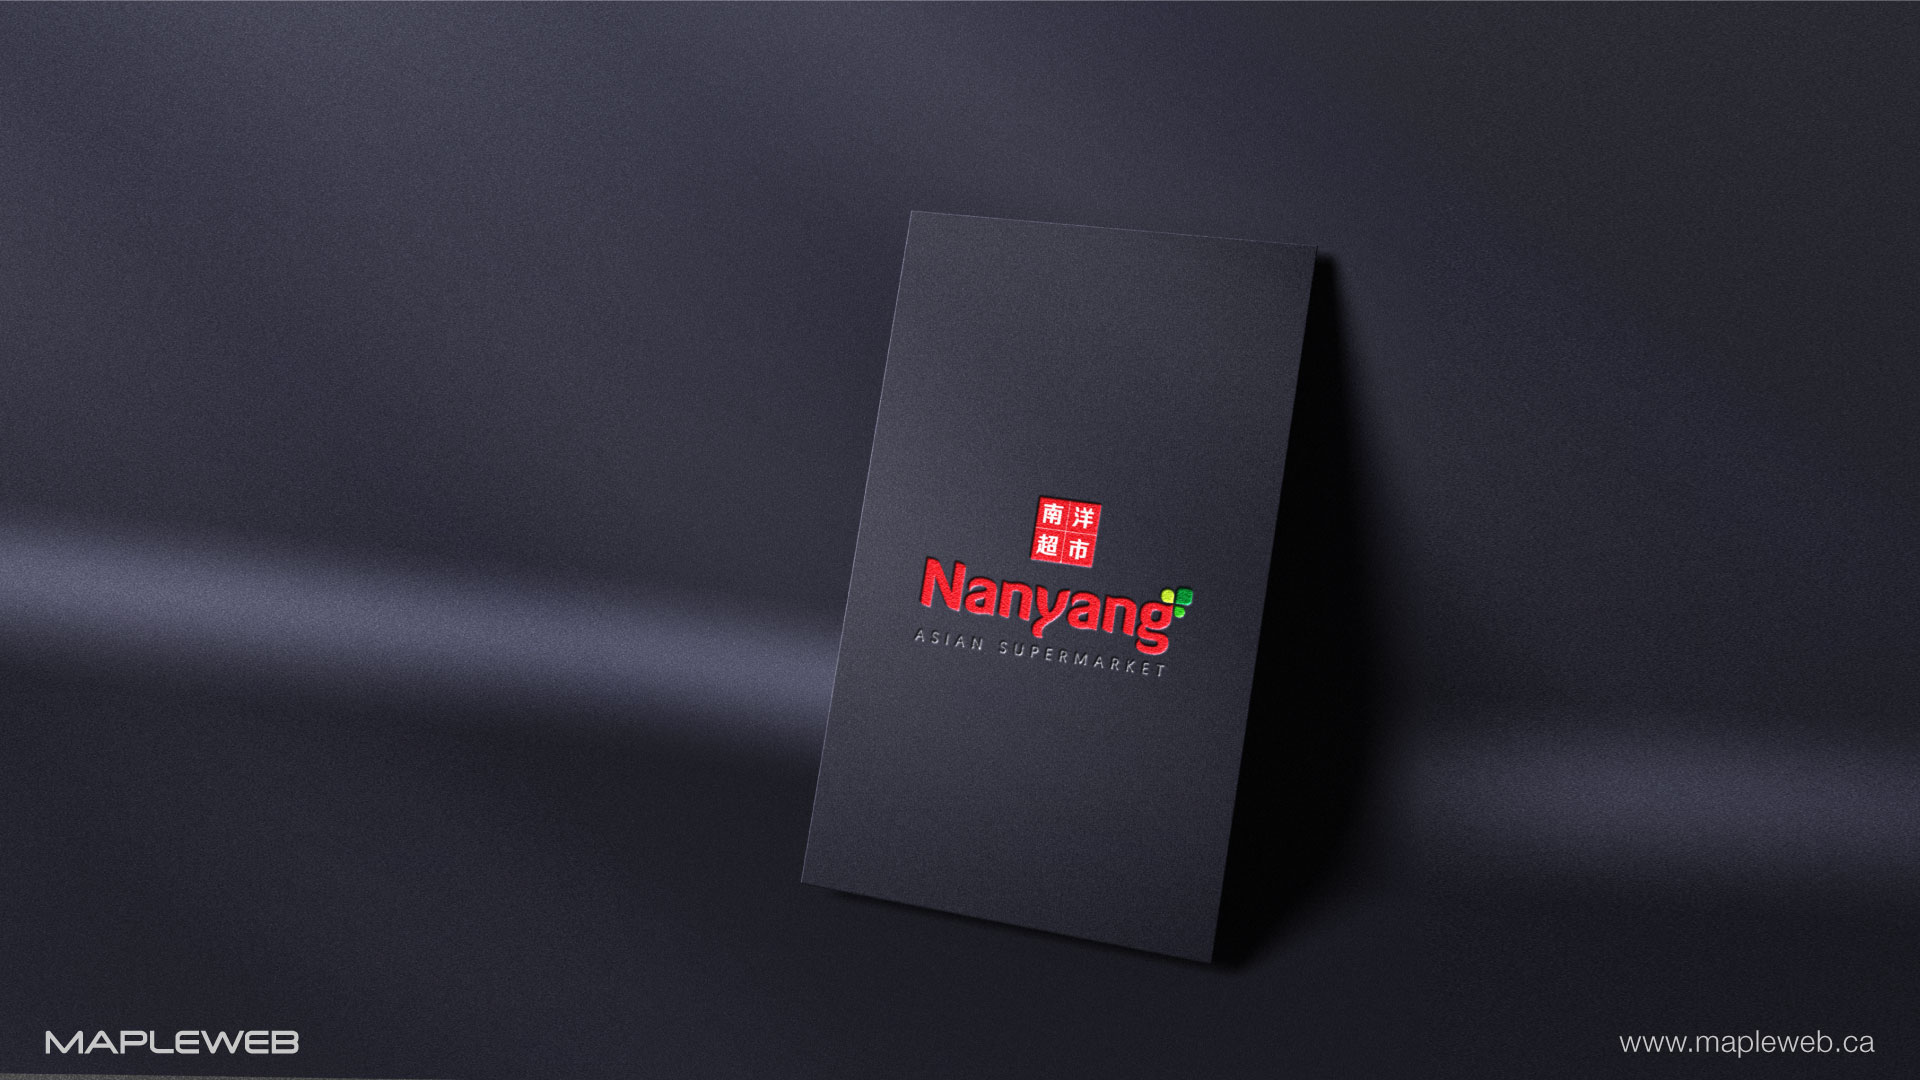 nanyang-brand-logo-design-by-mapleweb-vancouver-canada-white-and-paper-card-mock